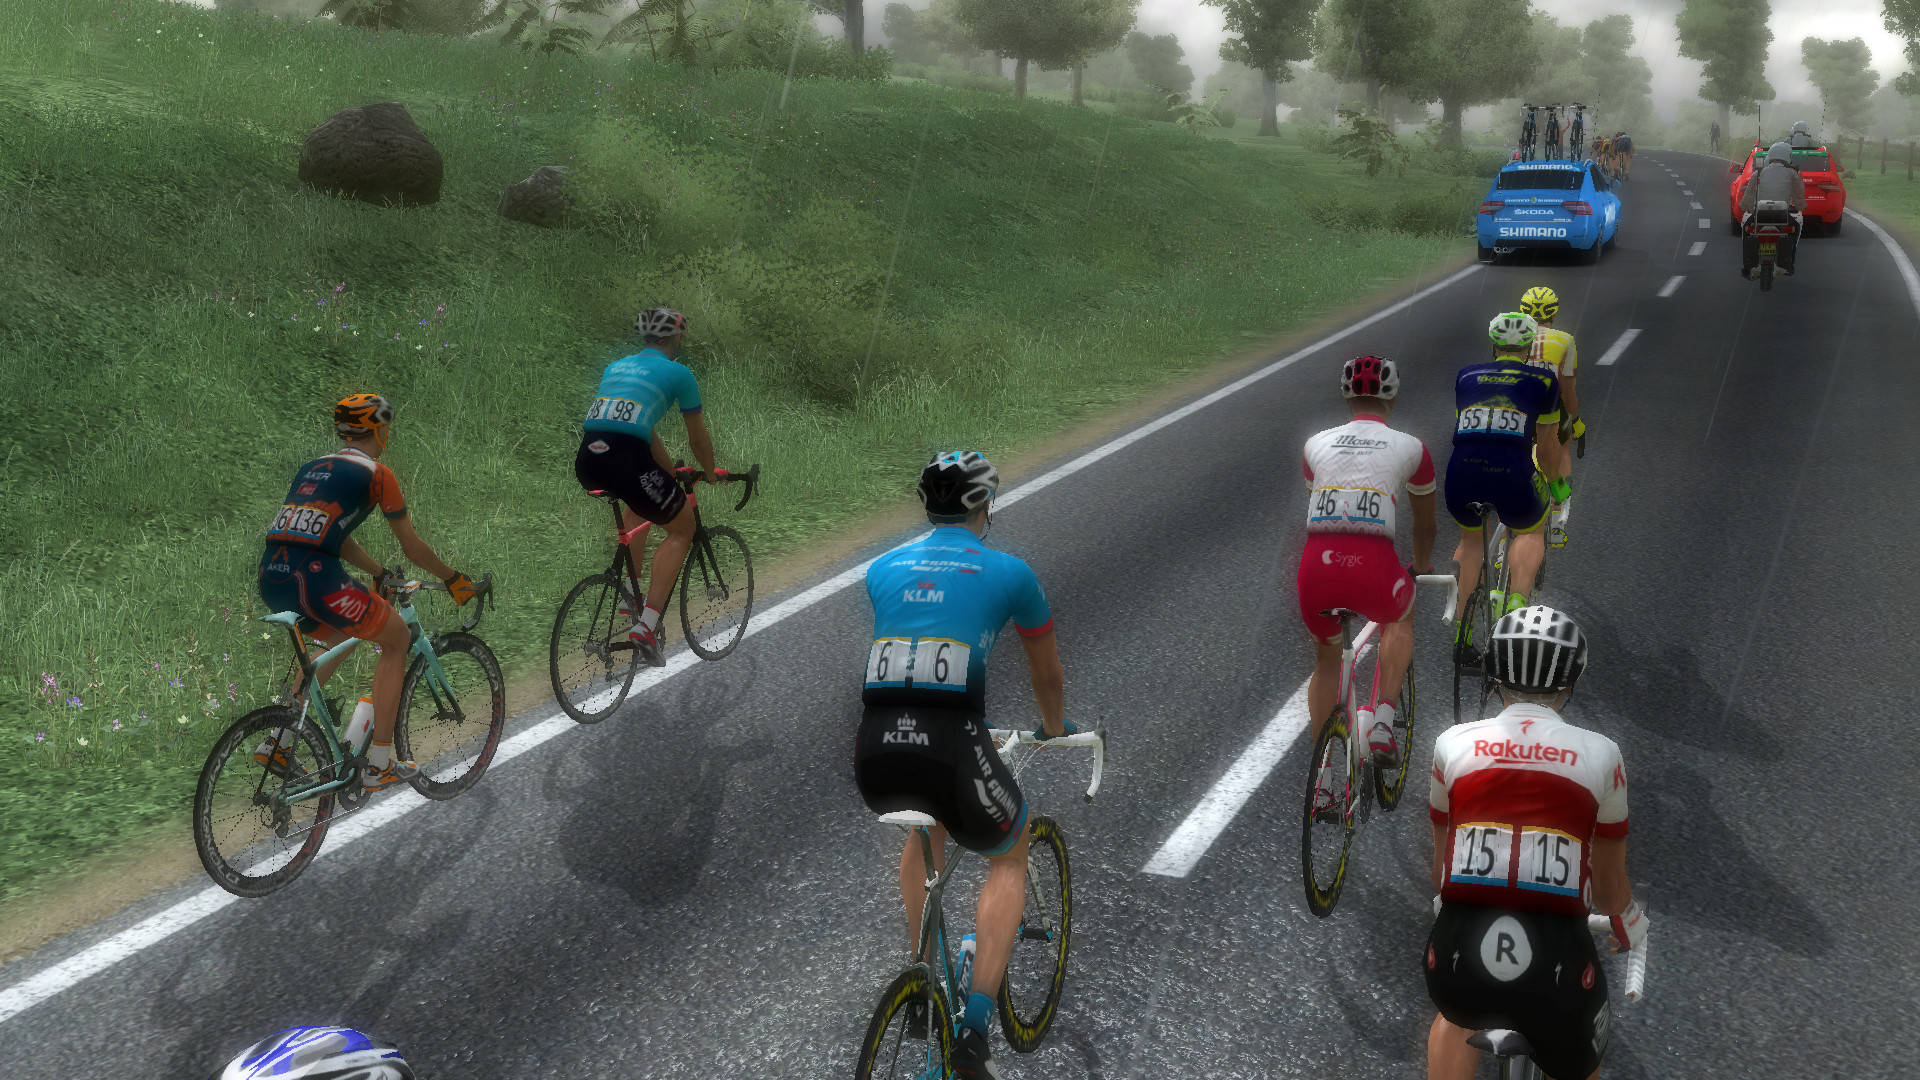 pcmdaily.com/images/mg/2020/Reports/GTM/LBL/05.jpg